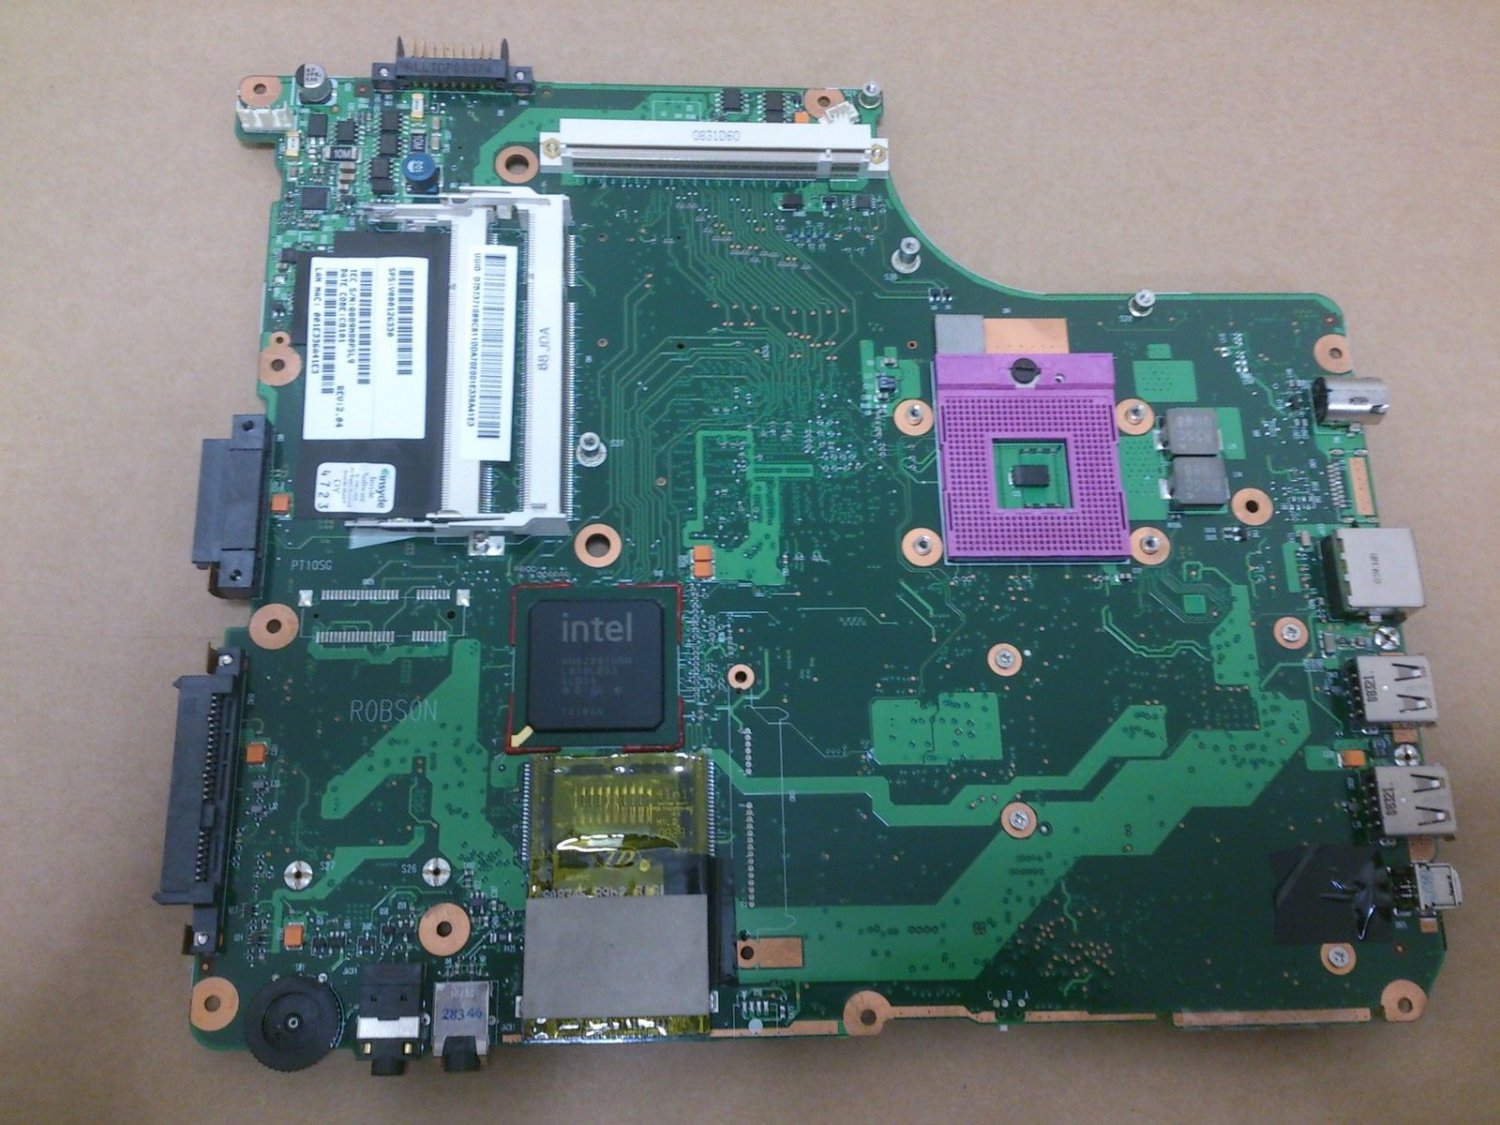 Toshiba Satellite A300 A305 Motherboard V000125700 PT10SG-6050A2171301-MB-A02